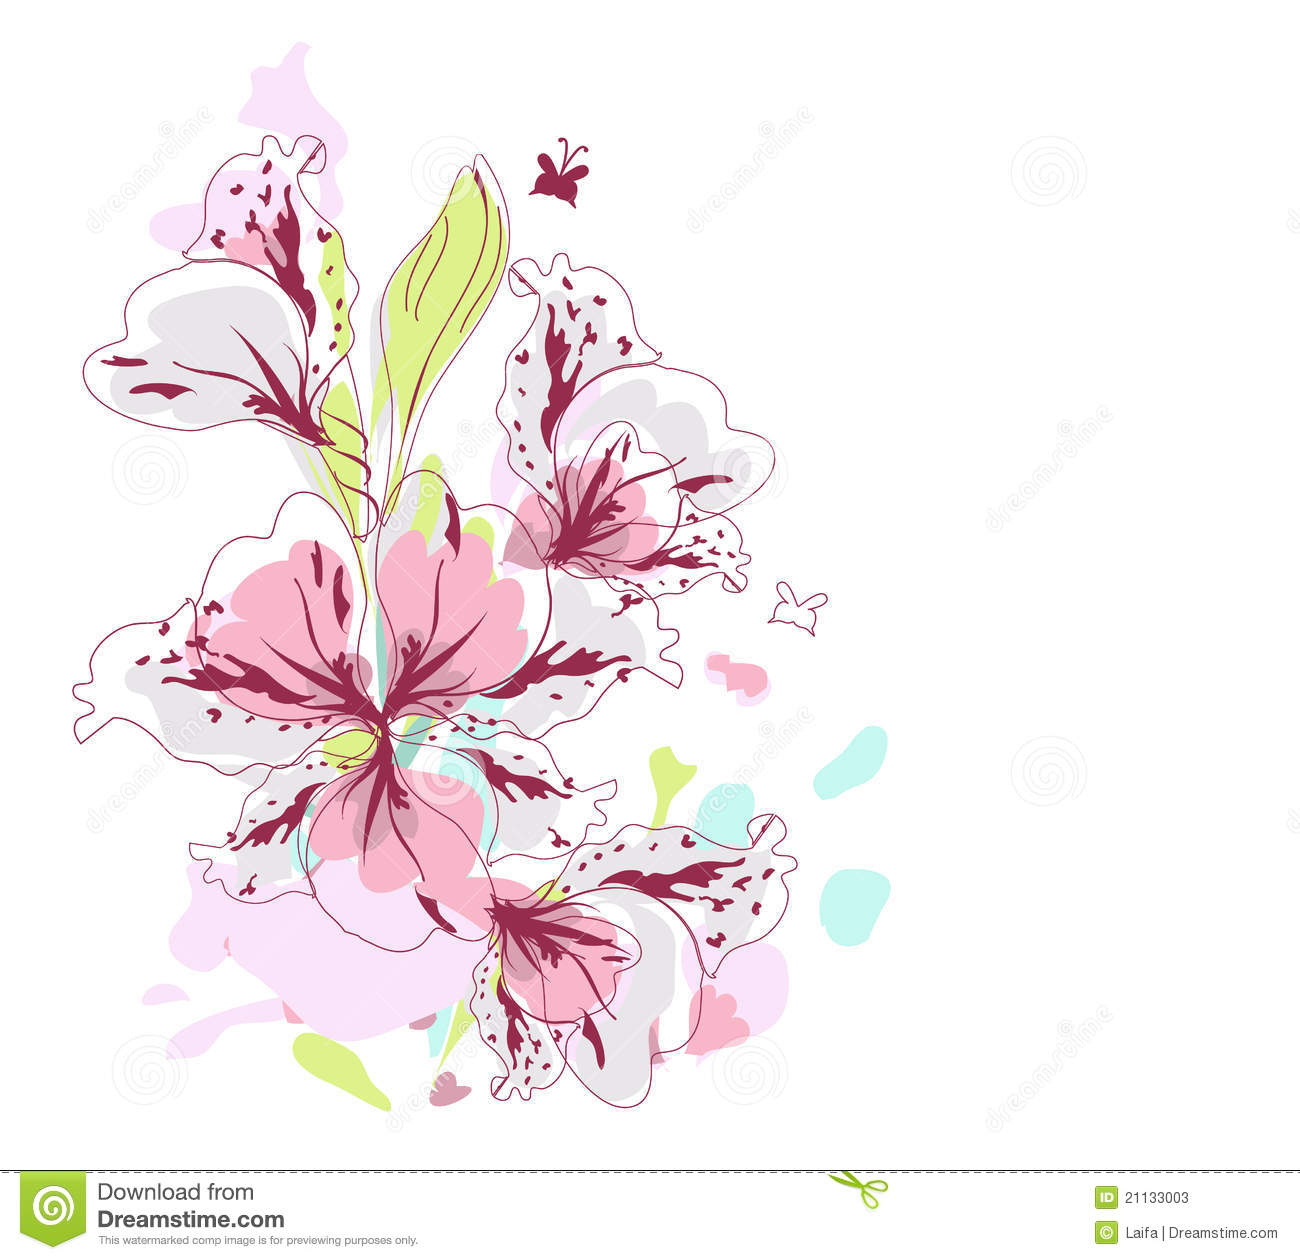 Pink Flowers In Watercolor Stock Photos Image 21133003